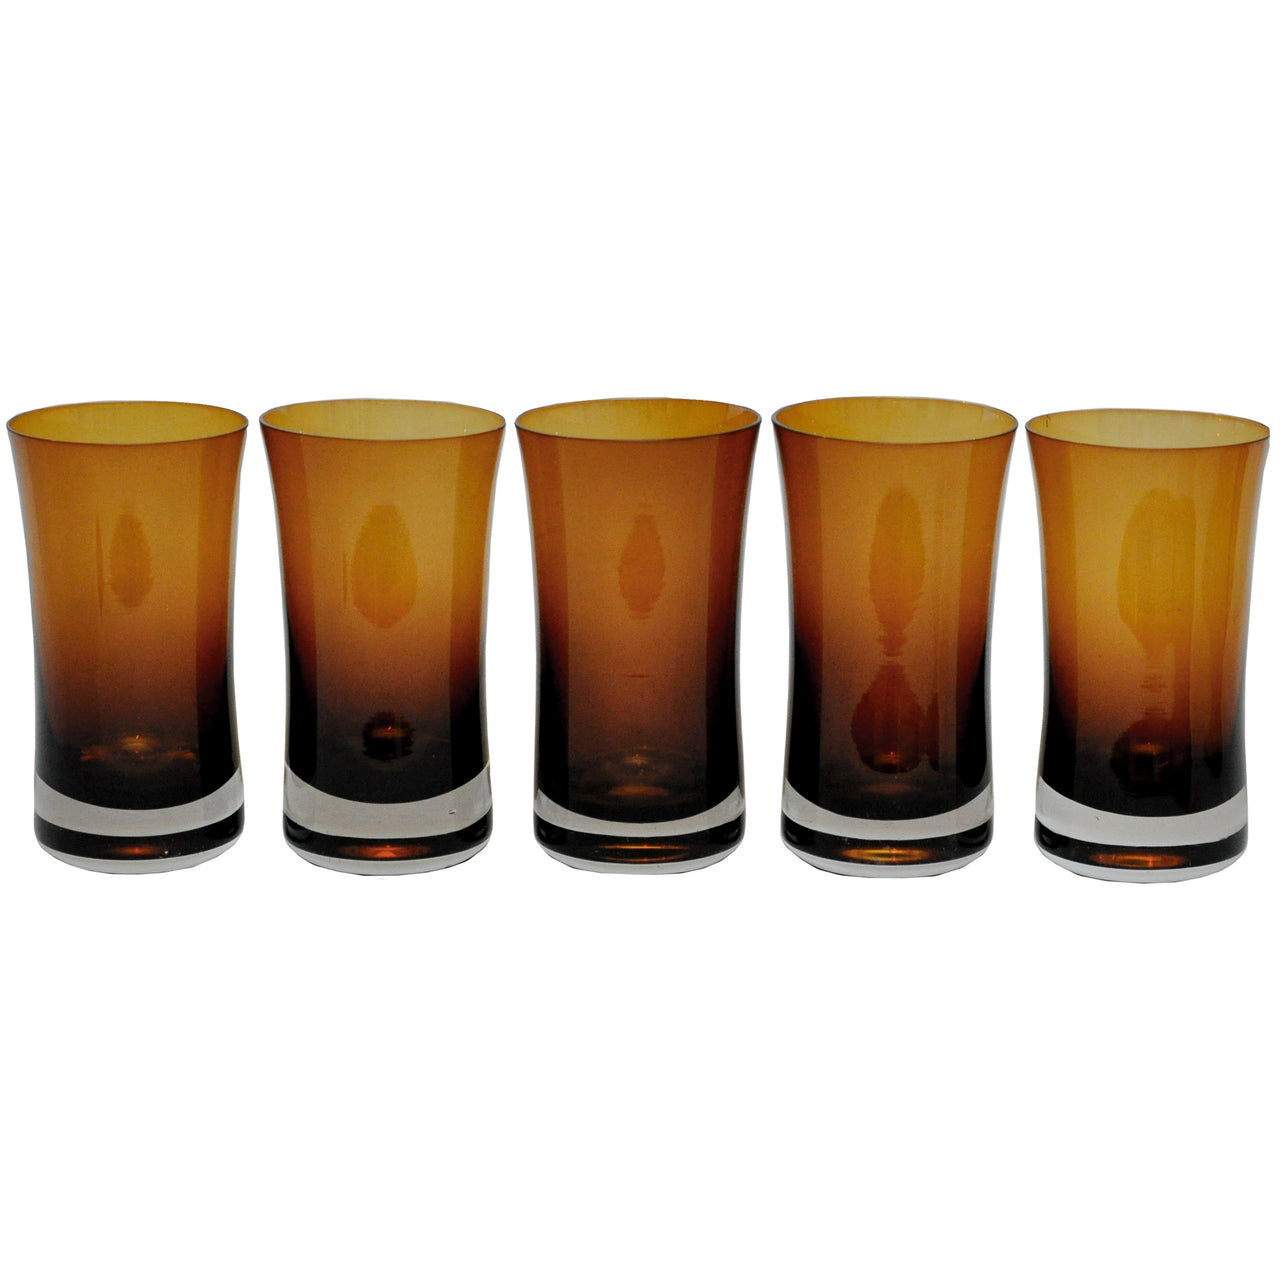 Denby Brown Cased Collins Glasses | The Hour Shop Vintage